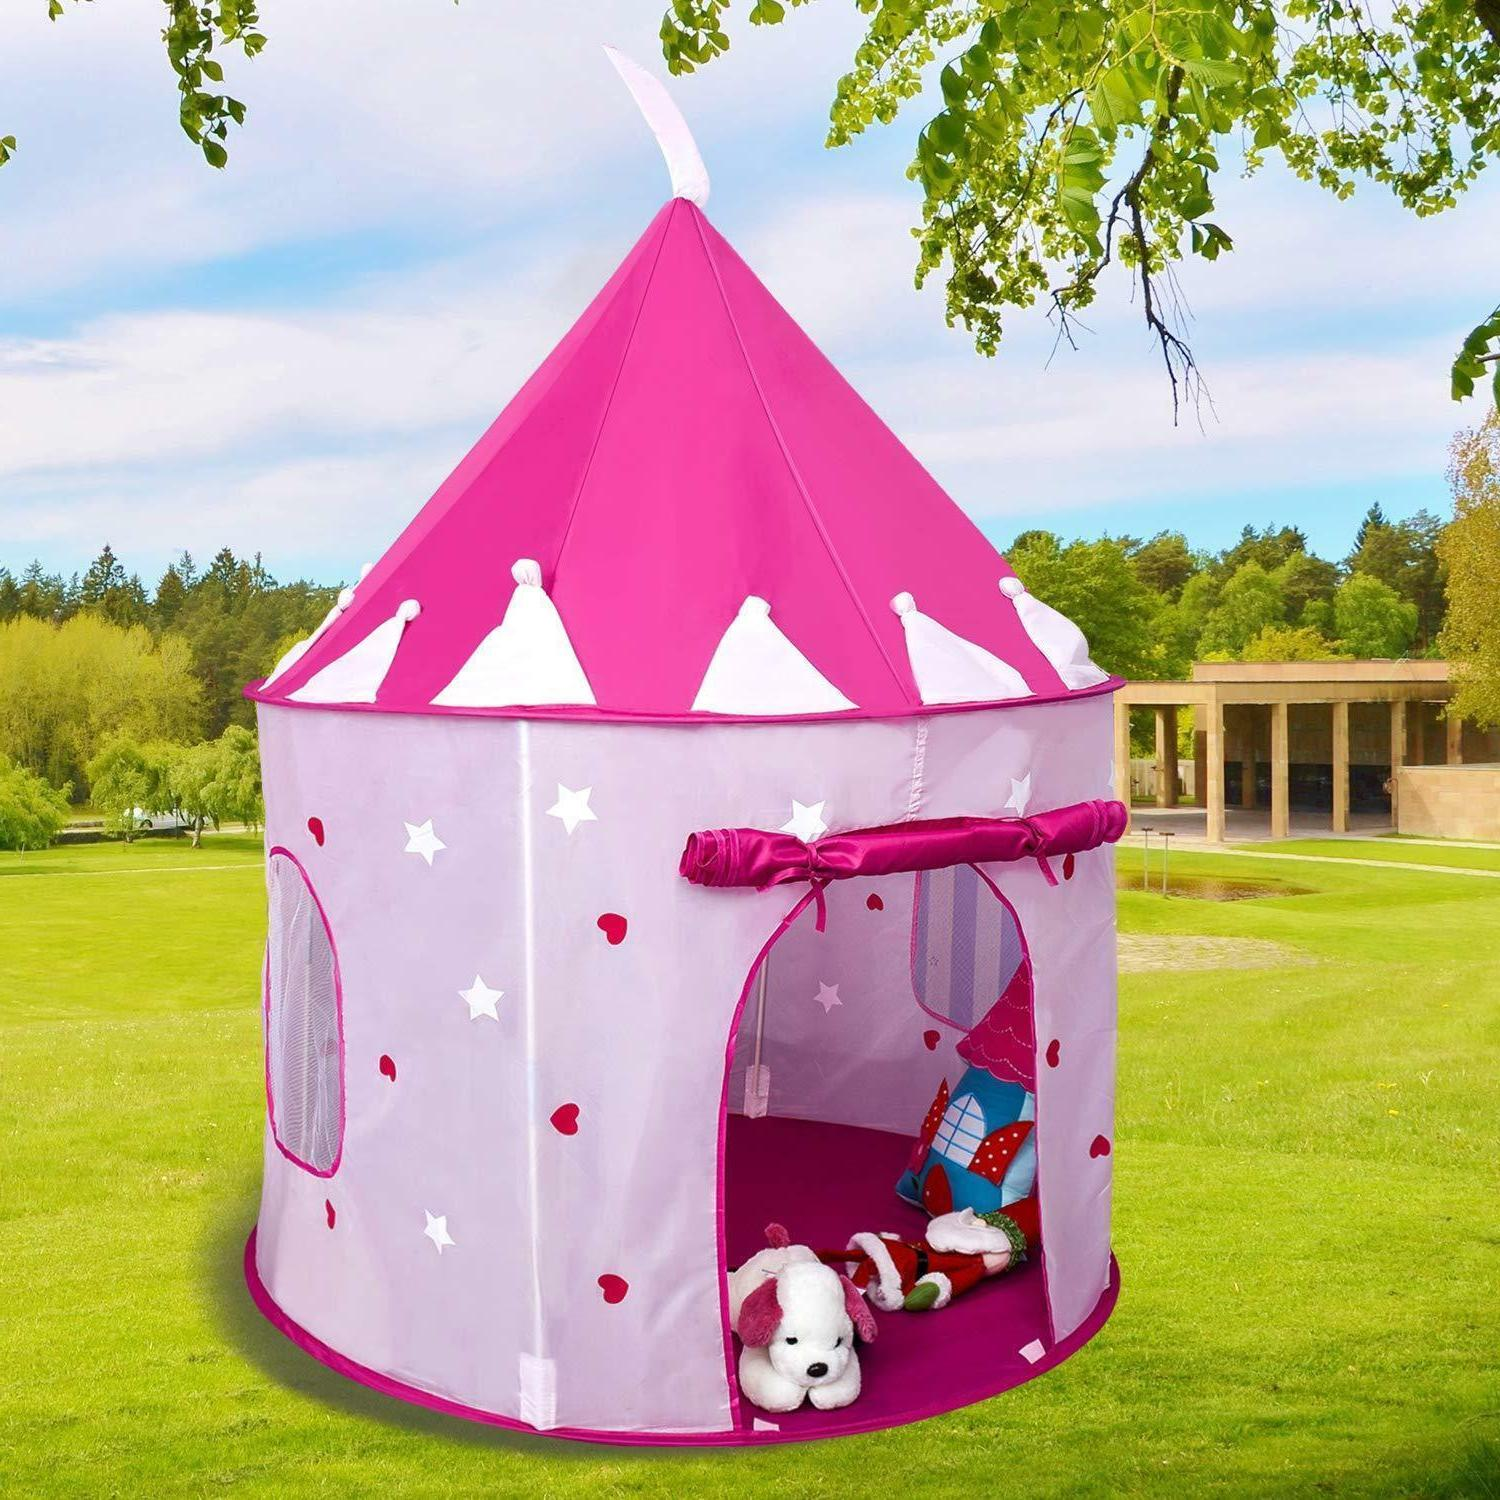 Toys For Girls Kids Children Play Tent House for 4 5 6 10 Years Age